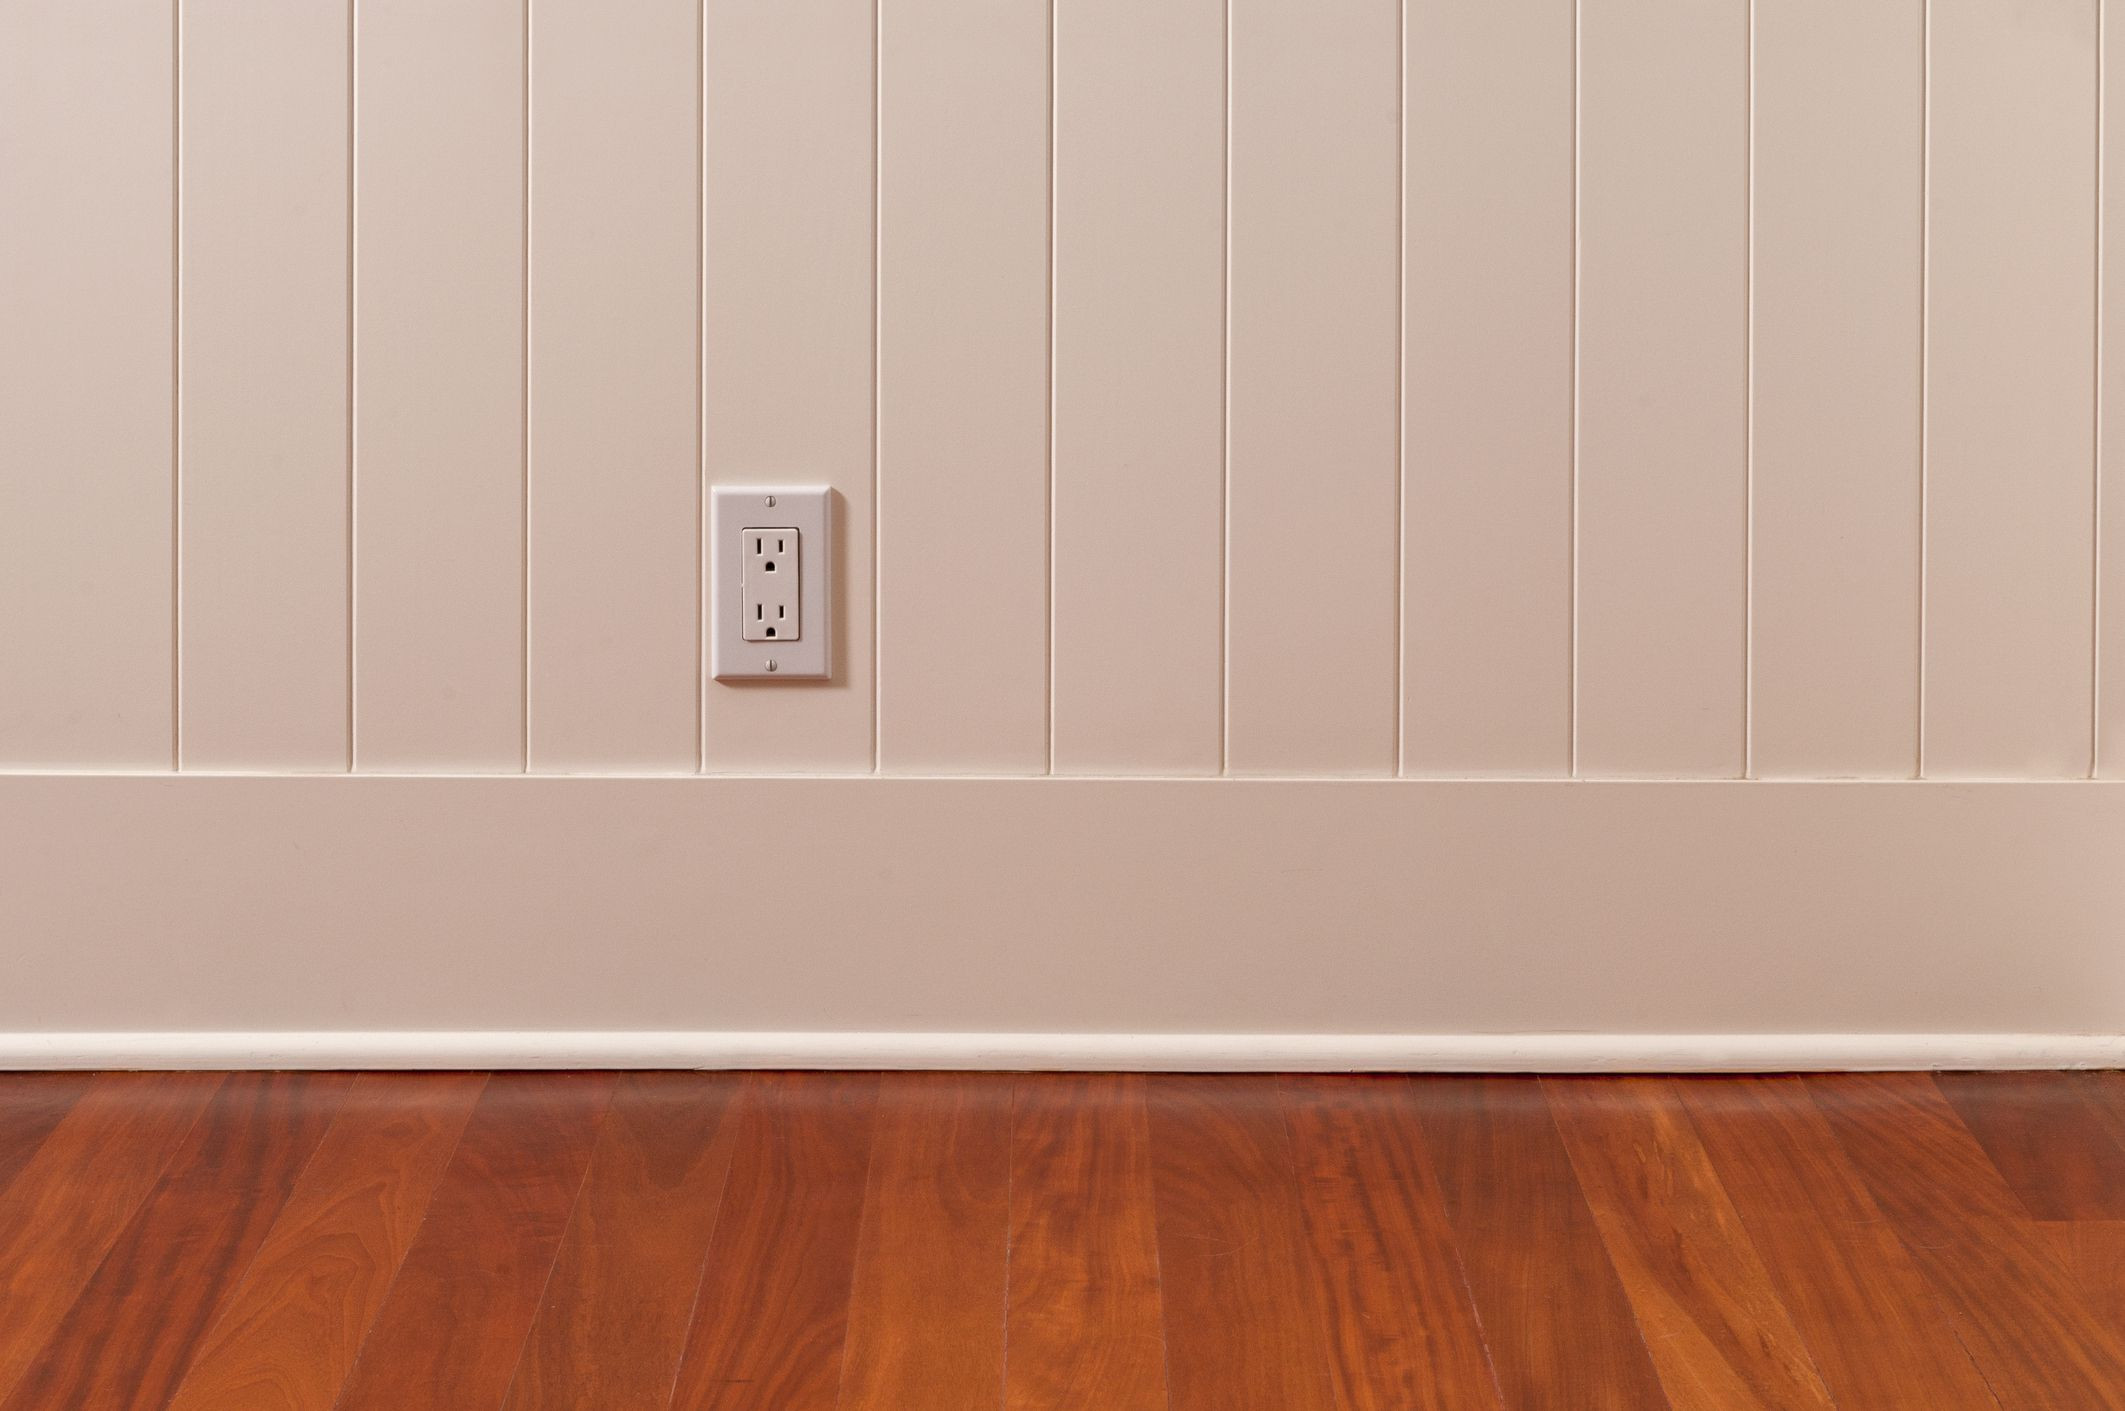 hardwood floor installation rhode island of how to install shoe molding or quarter round molding pertaining to quarter round installed on baseboard 164003254 57a500d85f9b58974a84b0f6